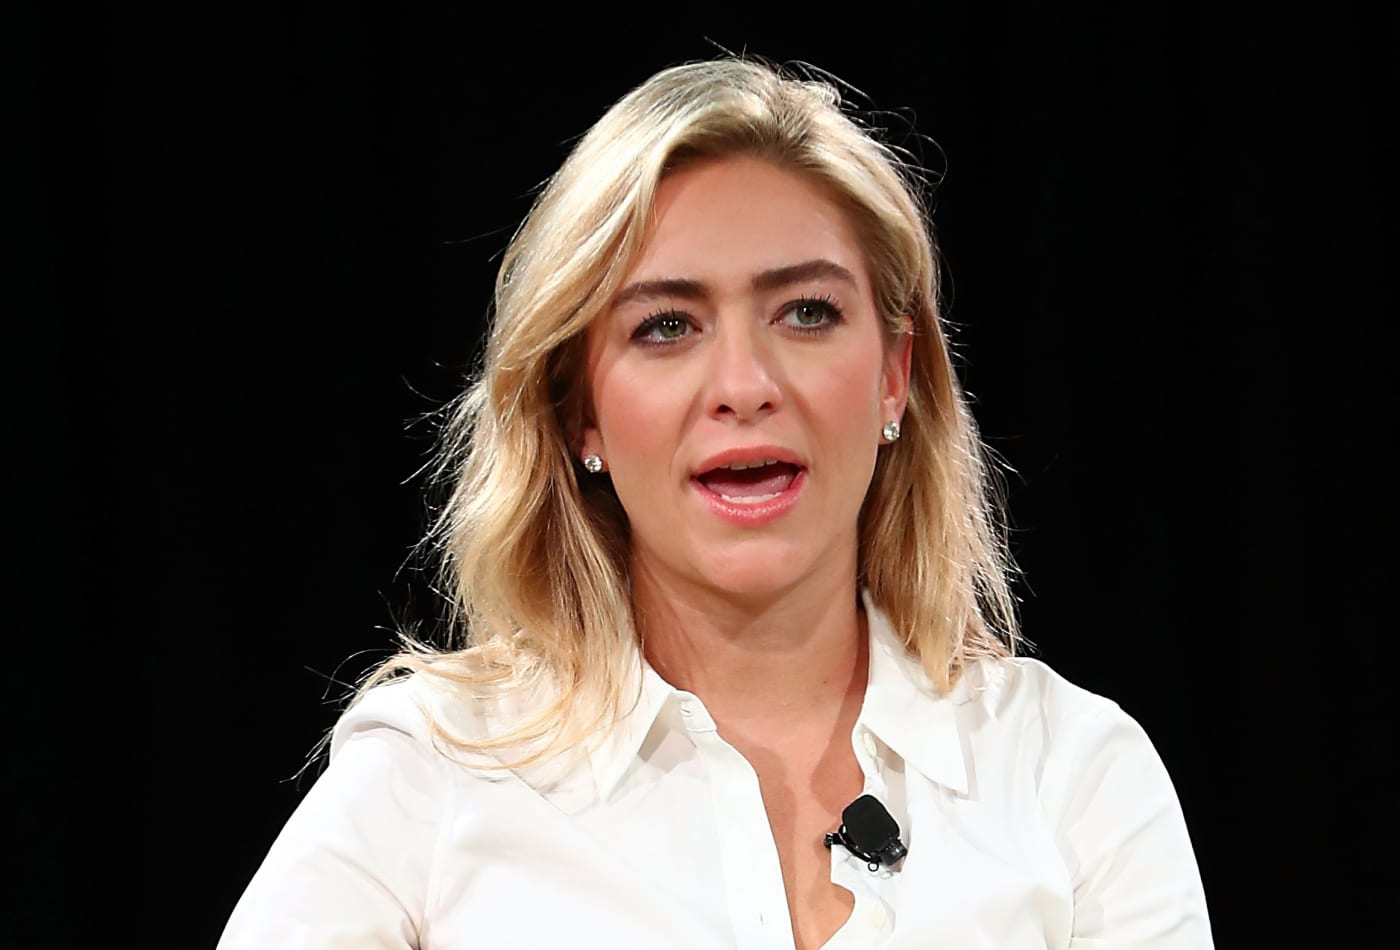 Bumble's IPO may be a feat — but venture capital funding for women is still an uphill battle